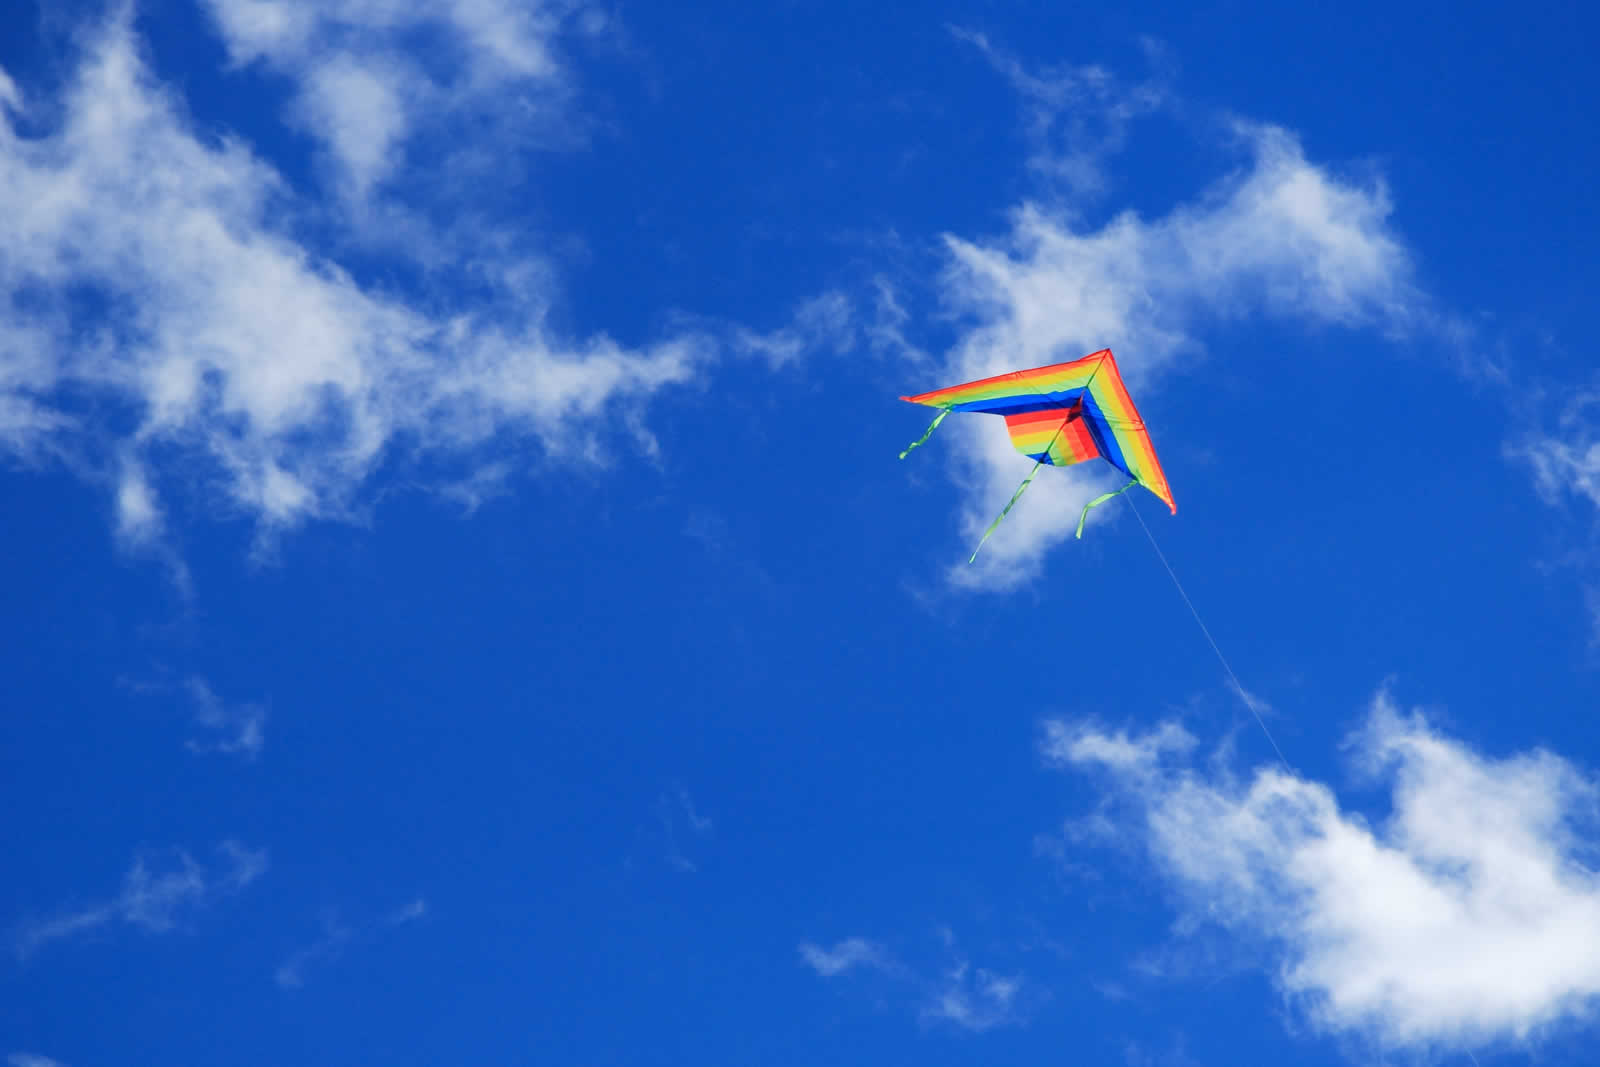 sky clouds kite